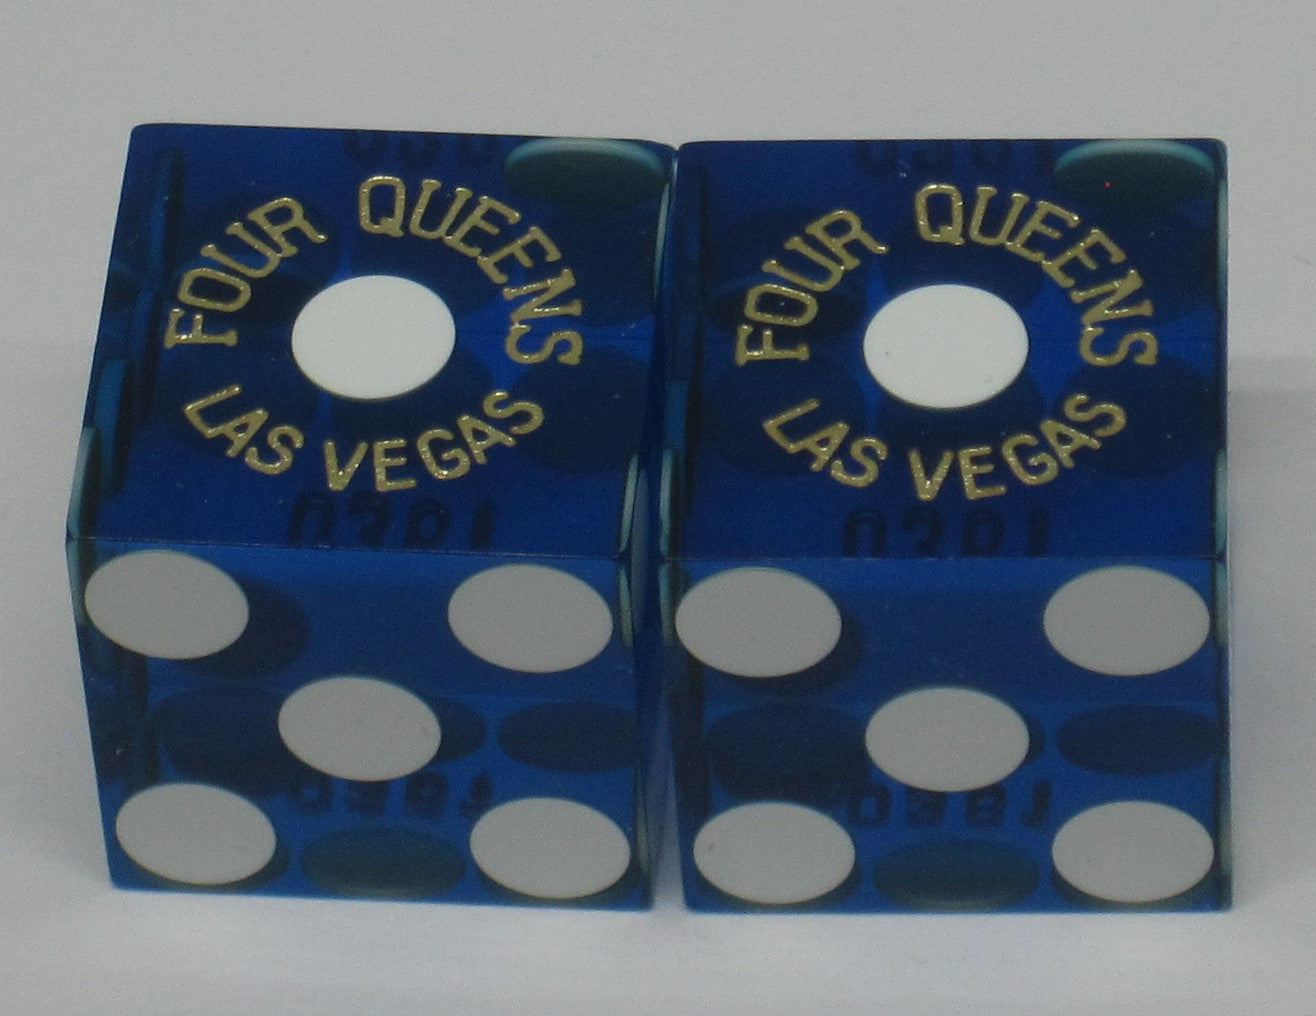 Four Queens Casino Used Matching Numbers Casino Blue Dice, Pair - Spinettis Gaming - 1